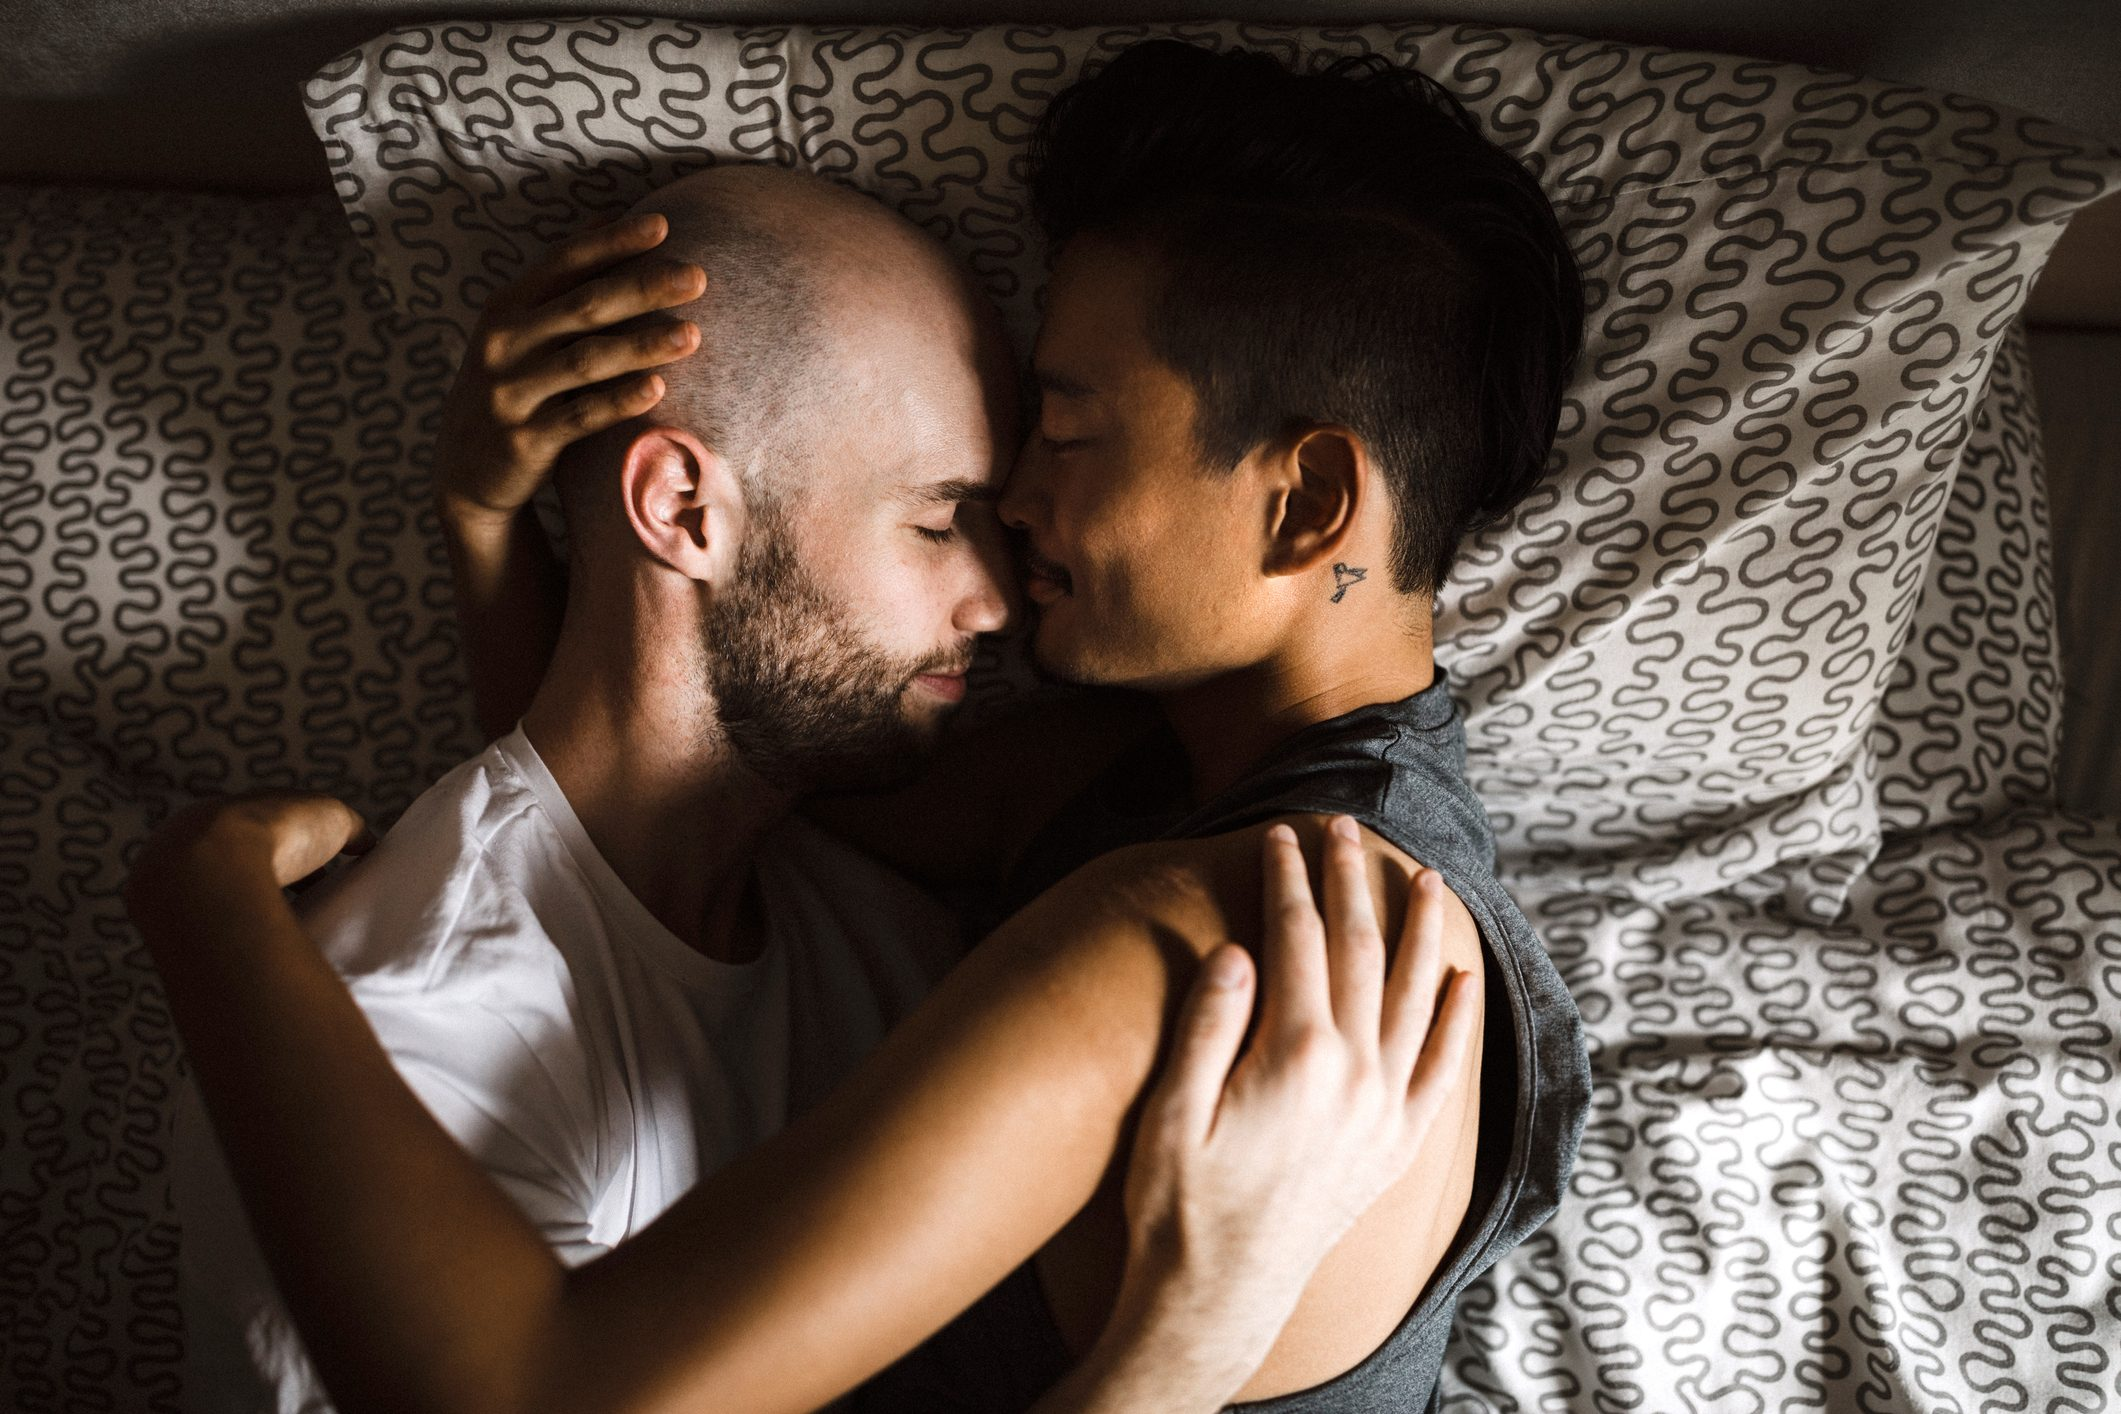 gay couple laying in bed together embracing